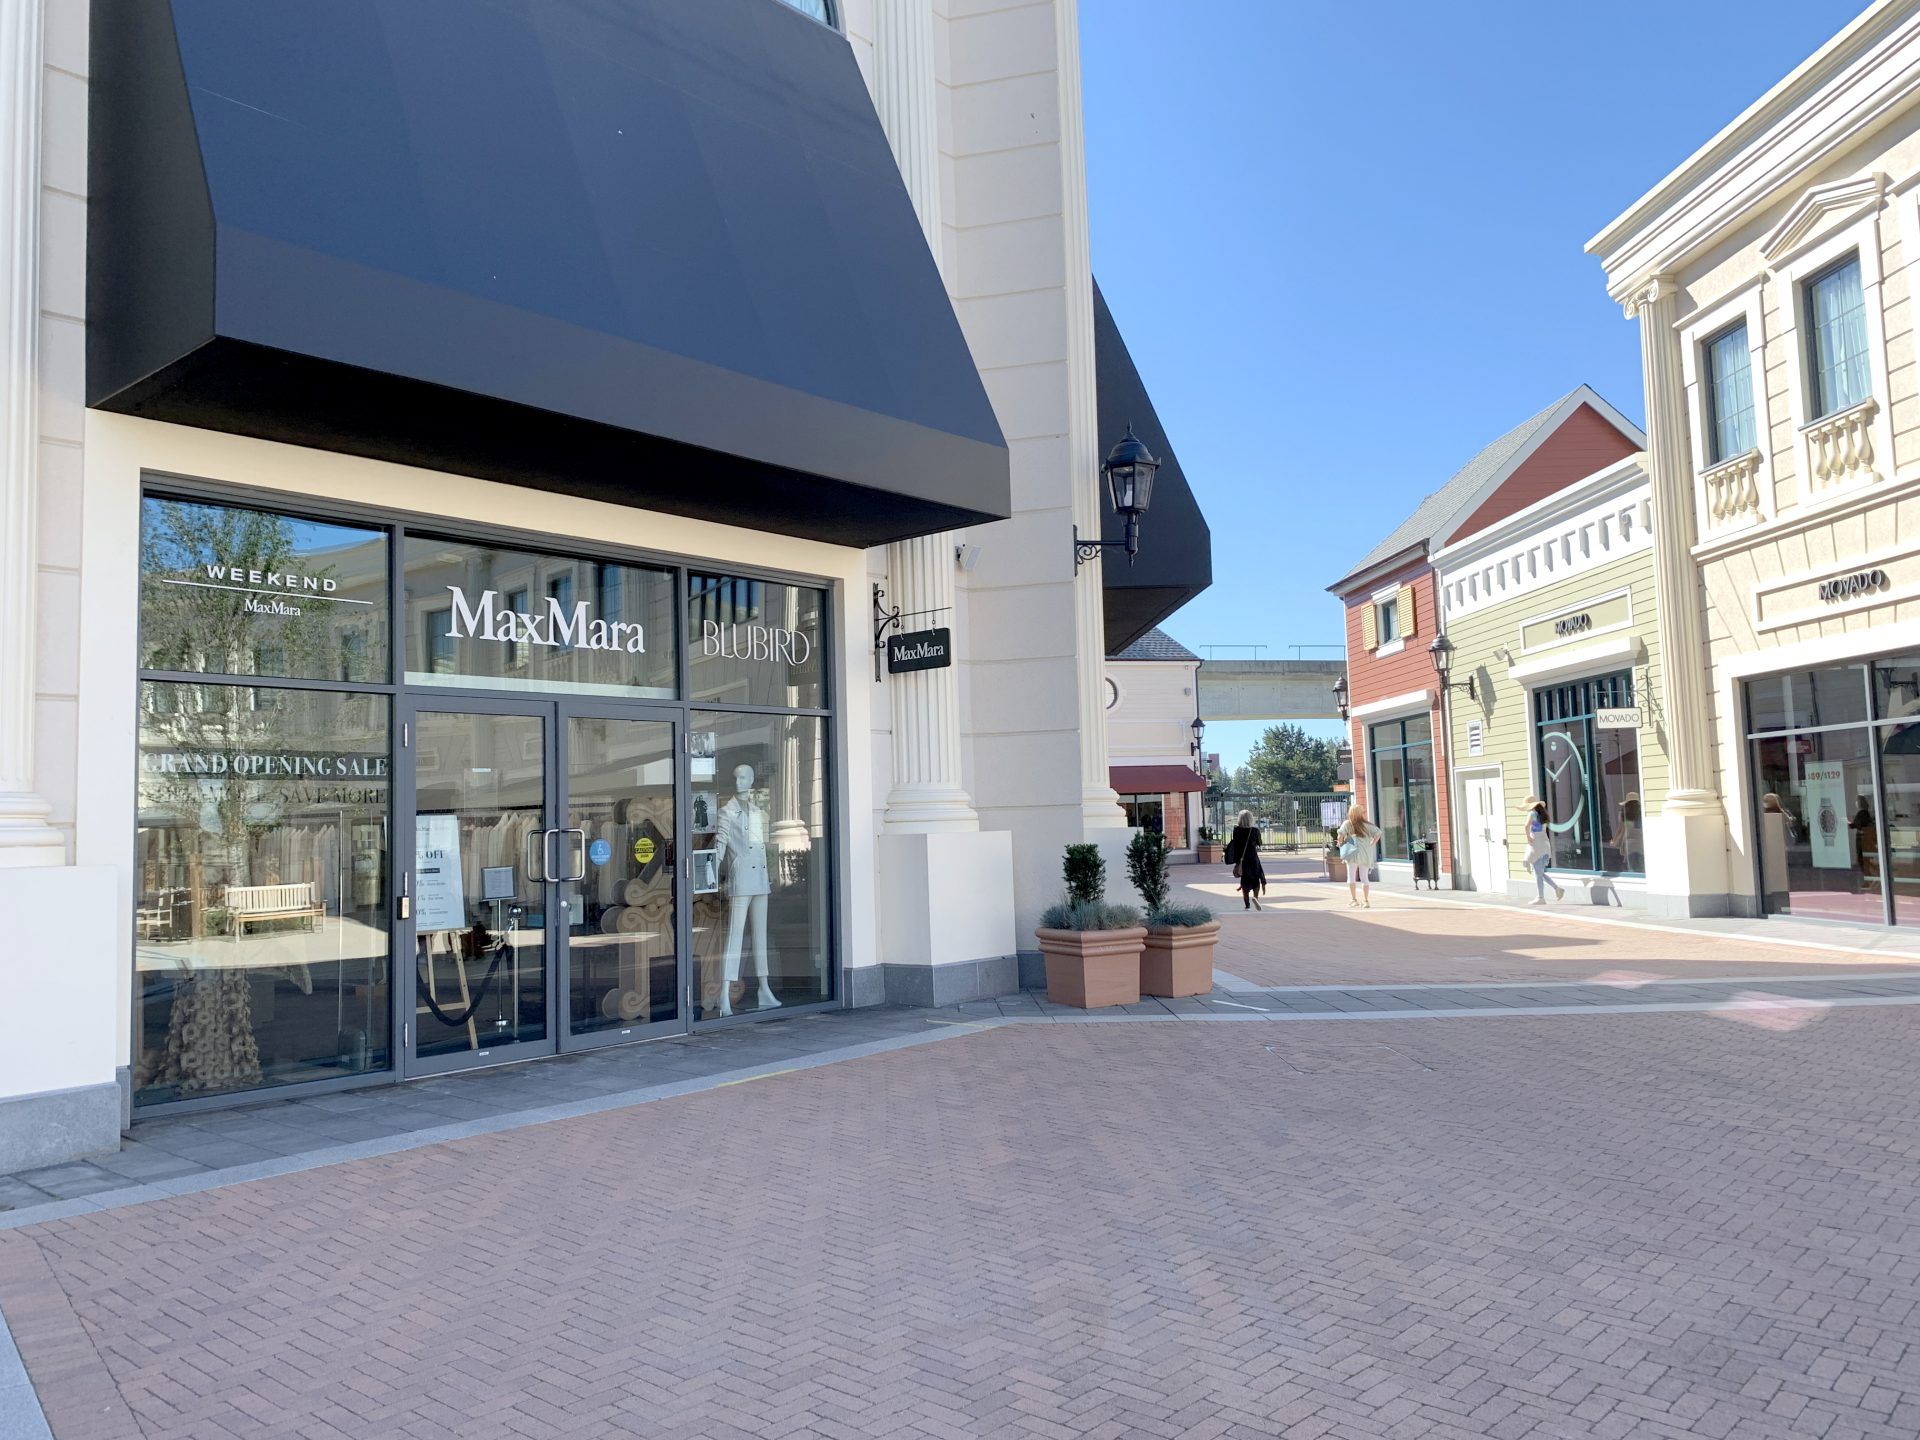 First-ever outlet store for Max Mara and Blubird opens in Vancouver